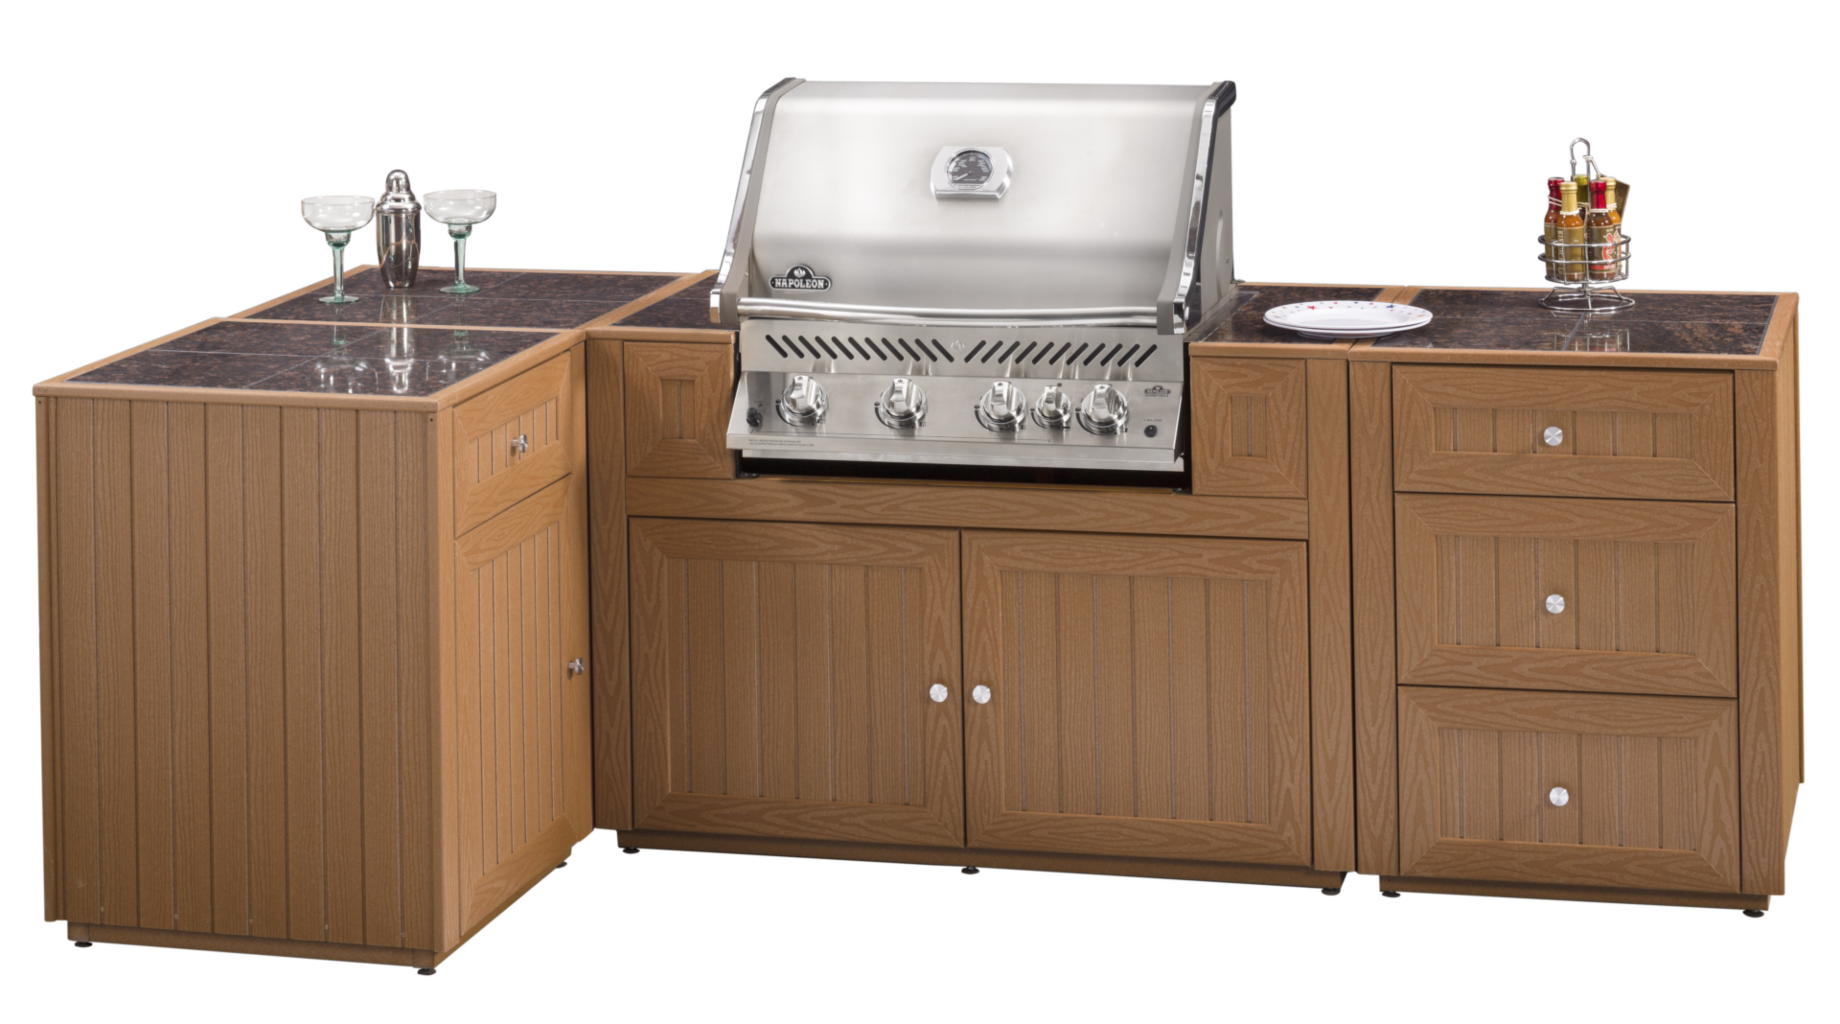 Outdoor Kitchens - Aspen Spas | Aspen Spas of St. Louis